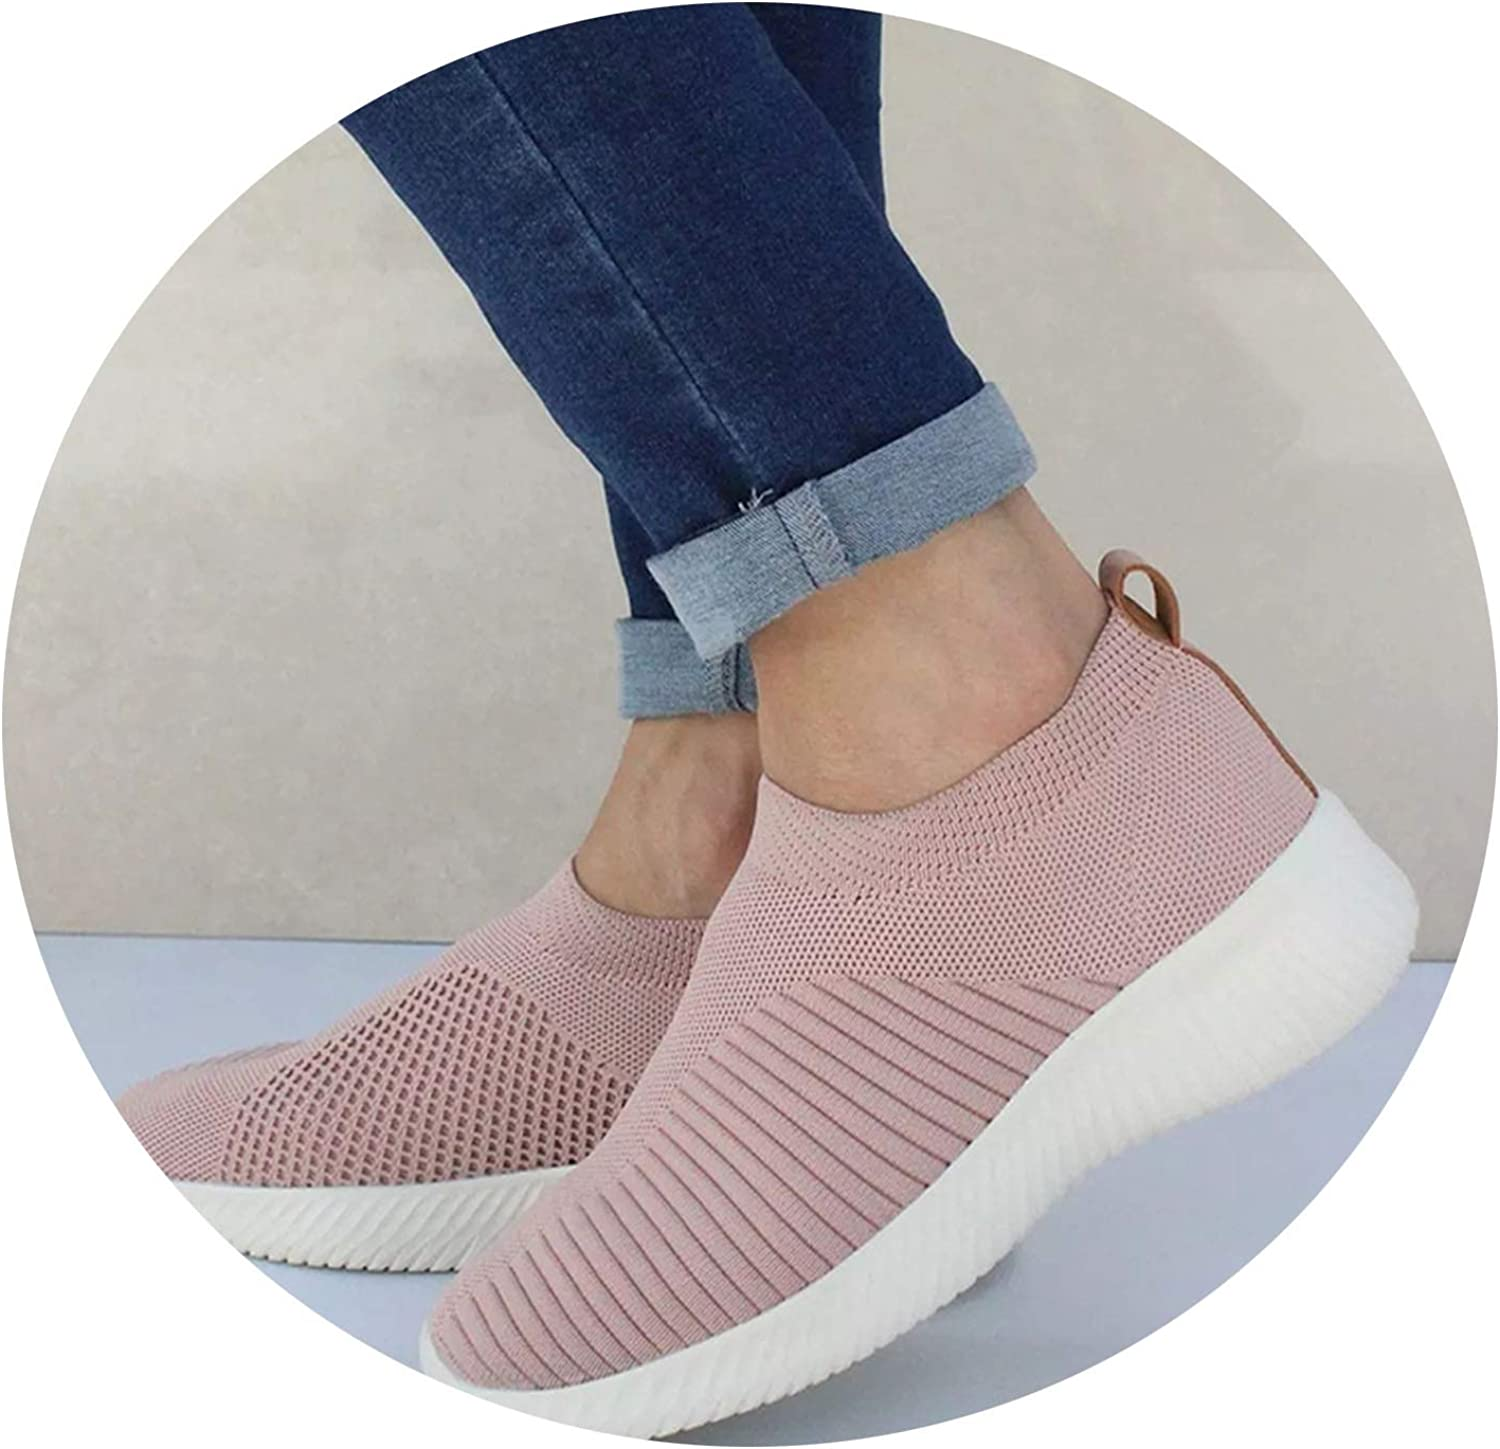 Don't mention the past Women Knitting Slip On Autumn Flat Loafers Lady Plus Size Comfort Breathable Mesh Sneaker Walking shoes